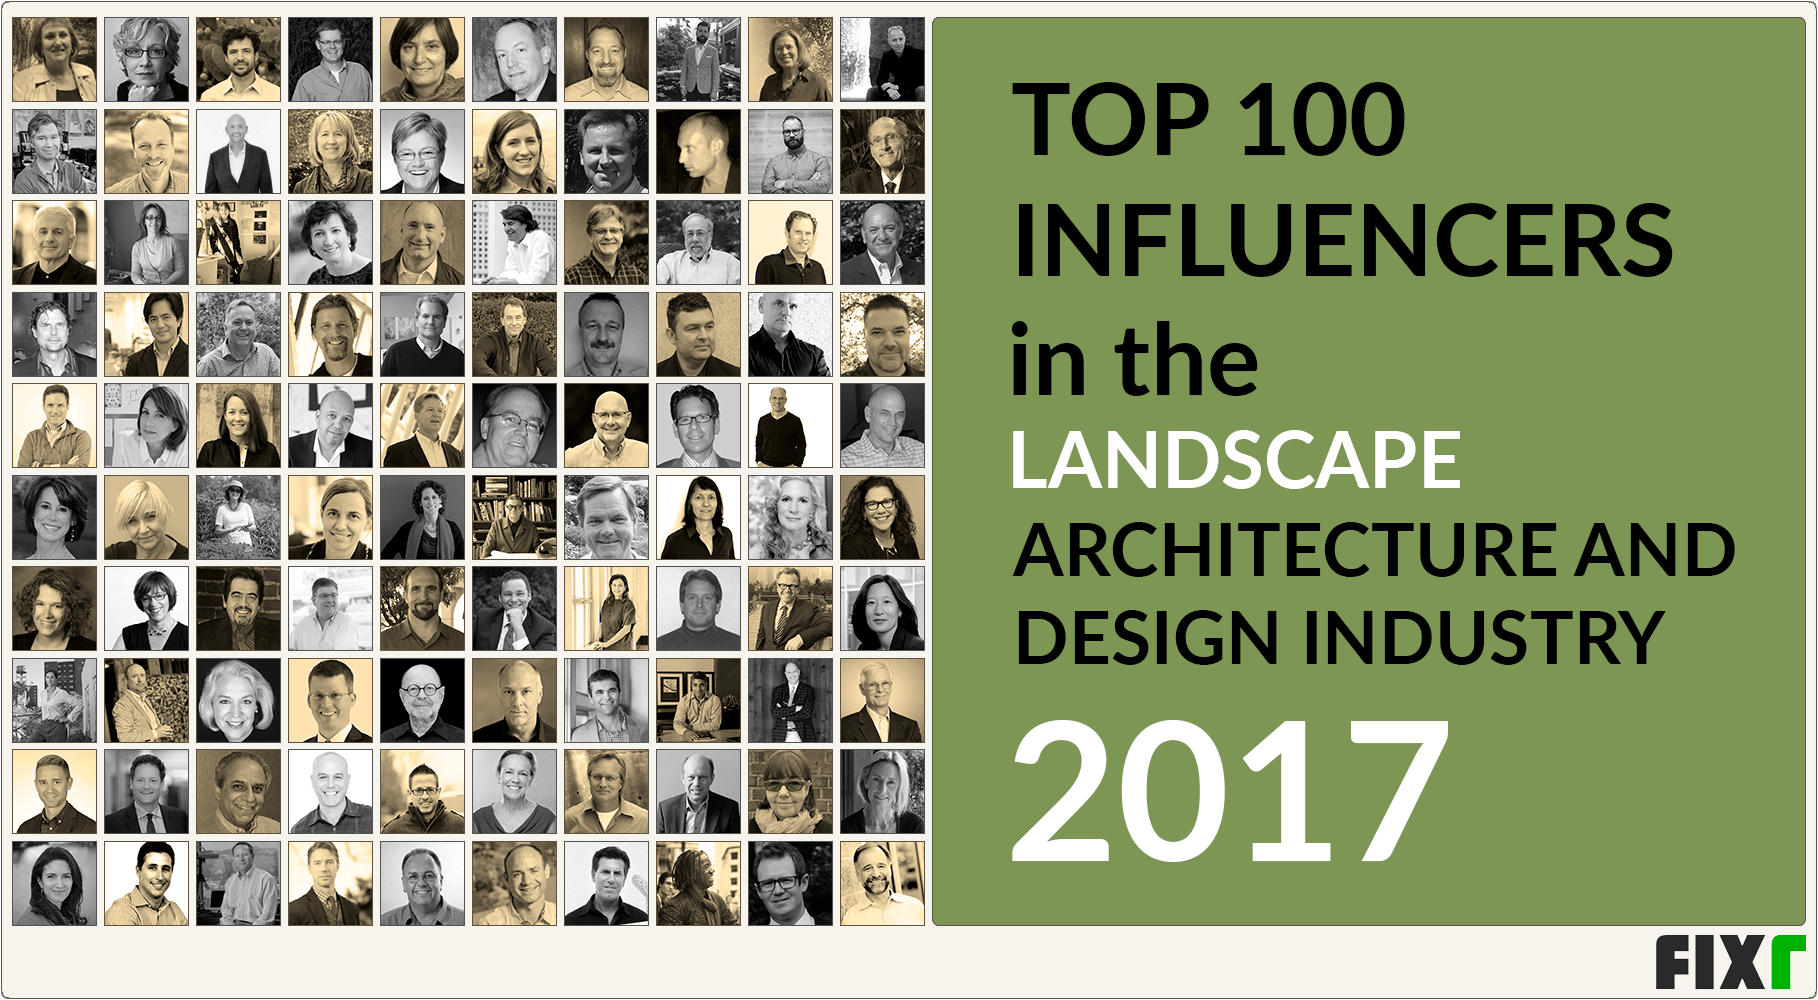 Top 100 Influencers In The Landscape Architecture And